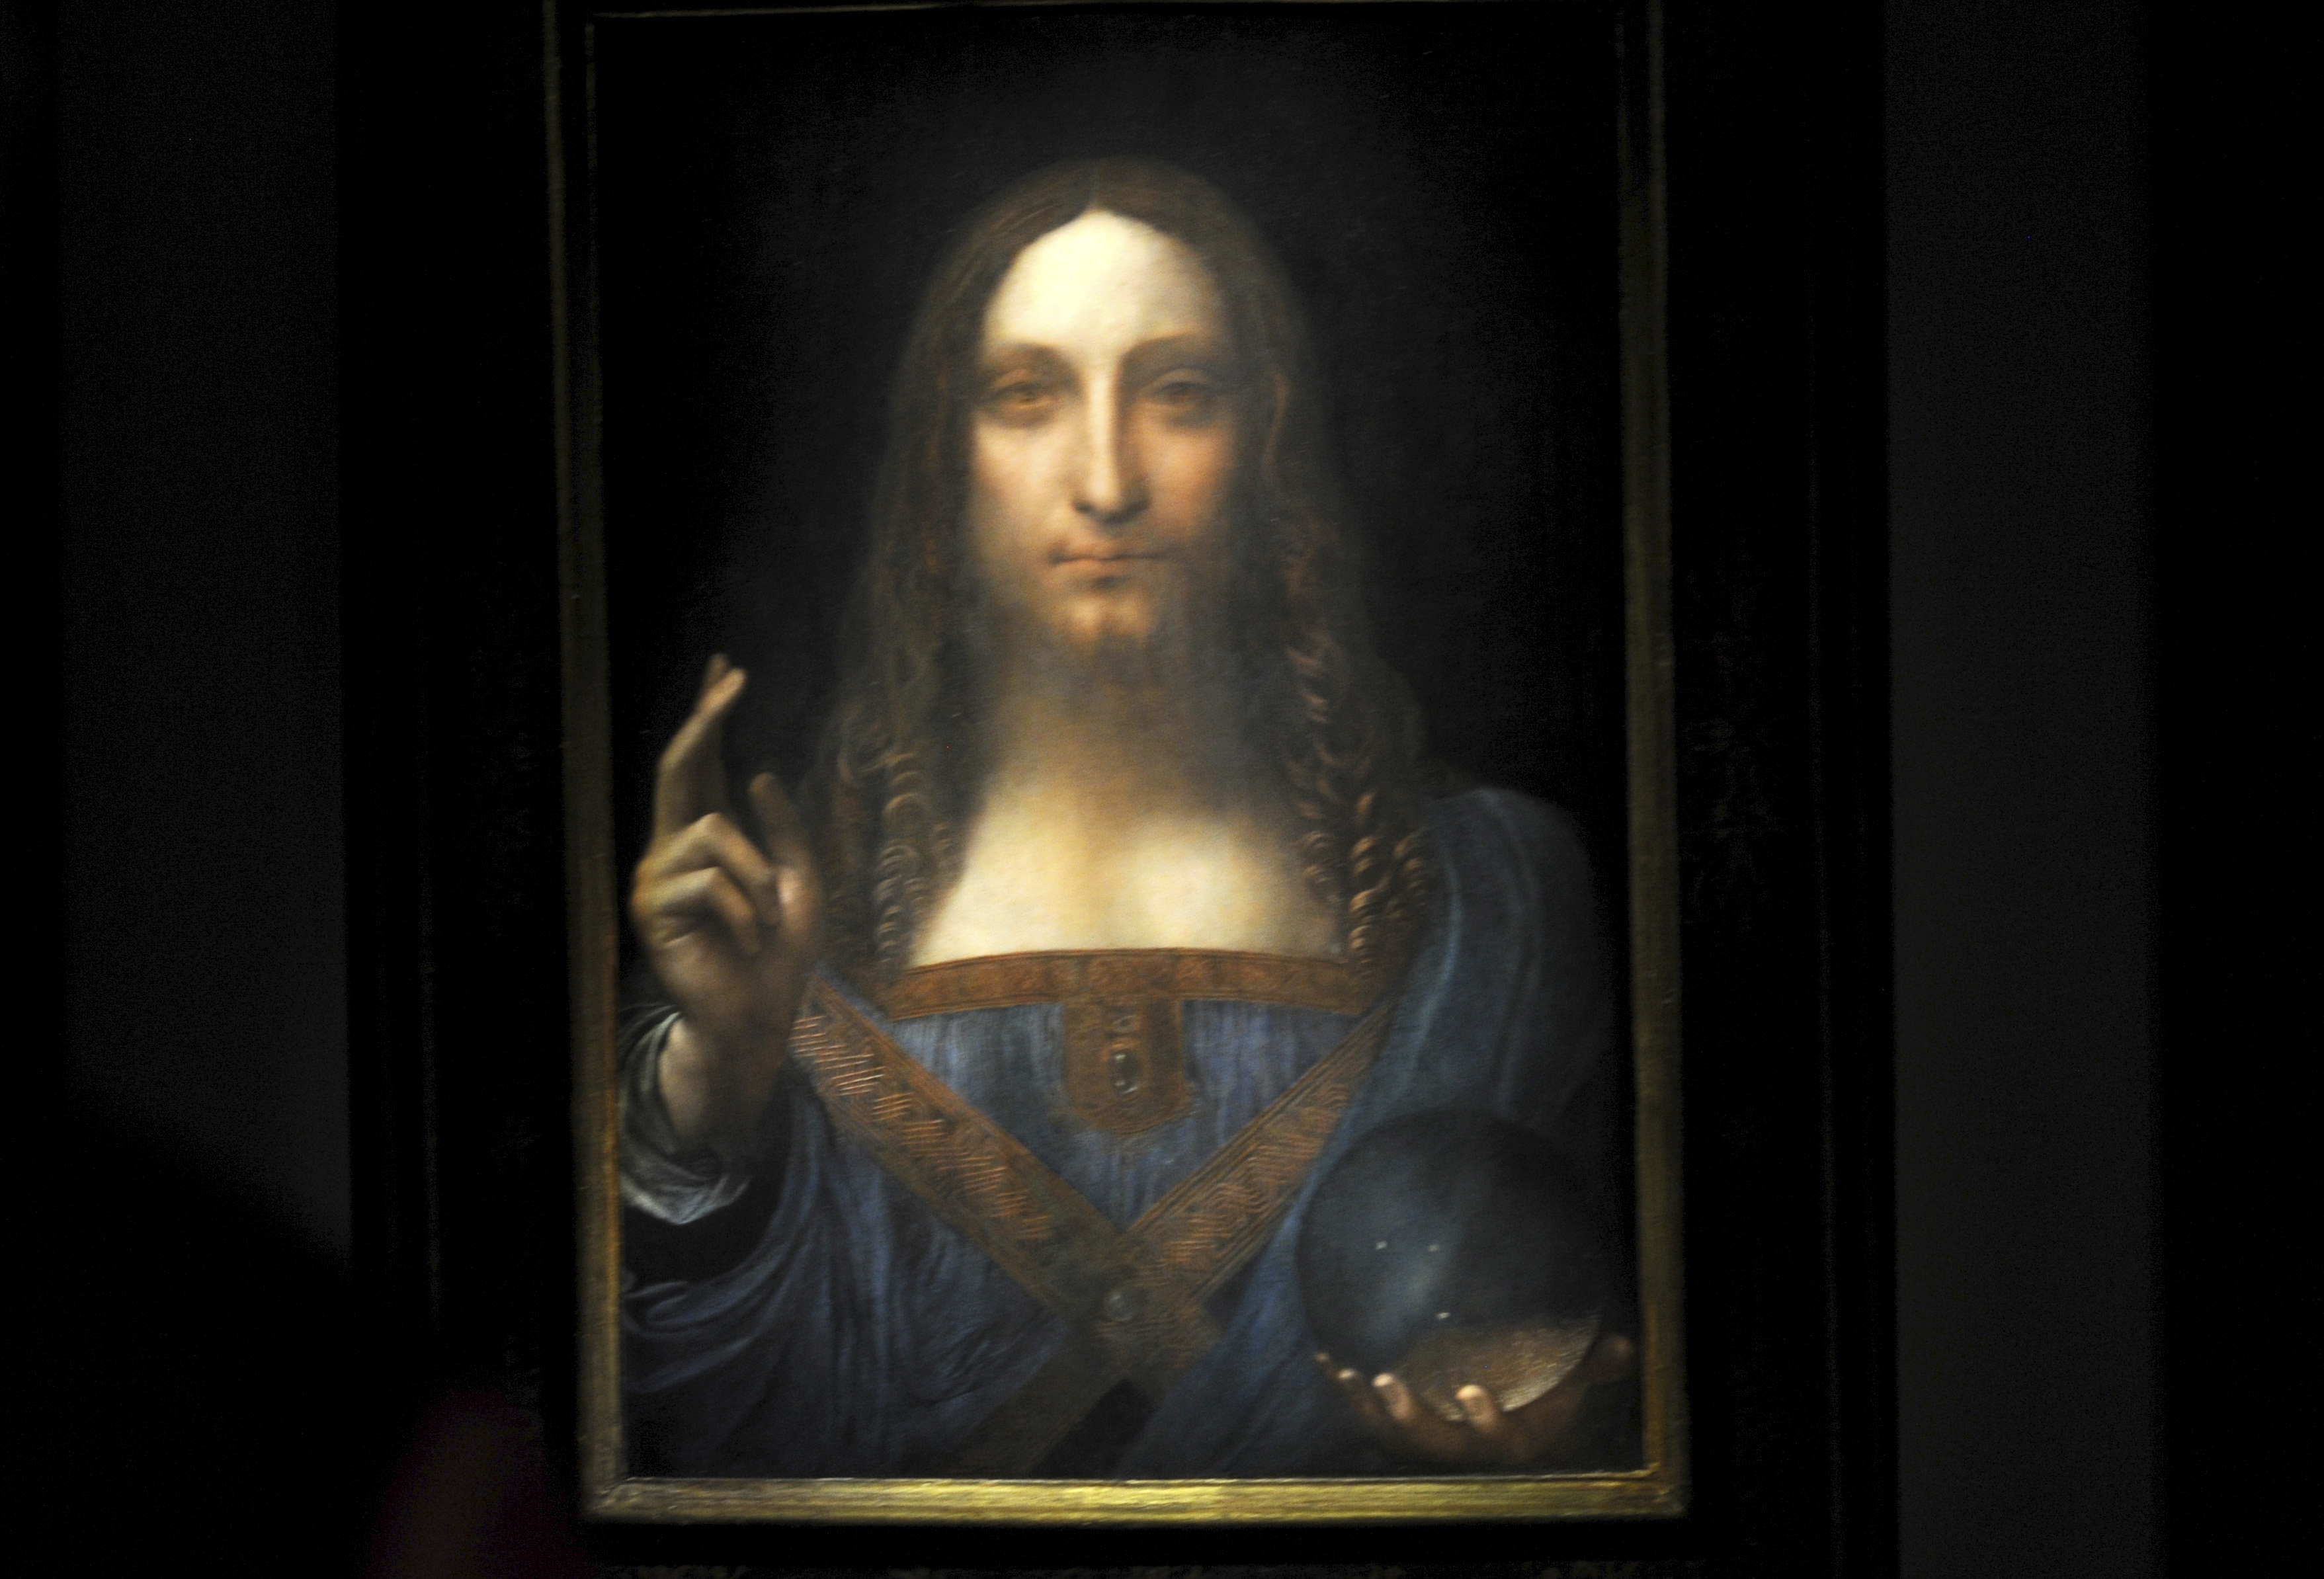 Leonardo da Vinci's Salvator Mundi painting is on display at a press preview at Christie's in New York City, NY, USA, on November 3, 2017. Leonardo's Salvator Mundi, one of fewer than 20 surviving paintings accepted as from the artist's own hand, has caused a worldwide media sensation and will be auctioned off at an estimated price of 100 Million dollars next week in New York. Photo by Dennis Van Tine/Sipa USA(Sipa via AP Images)